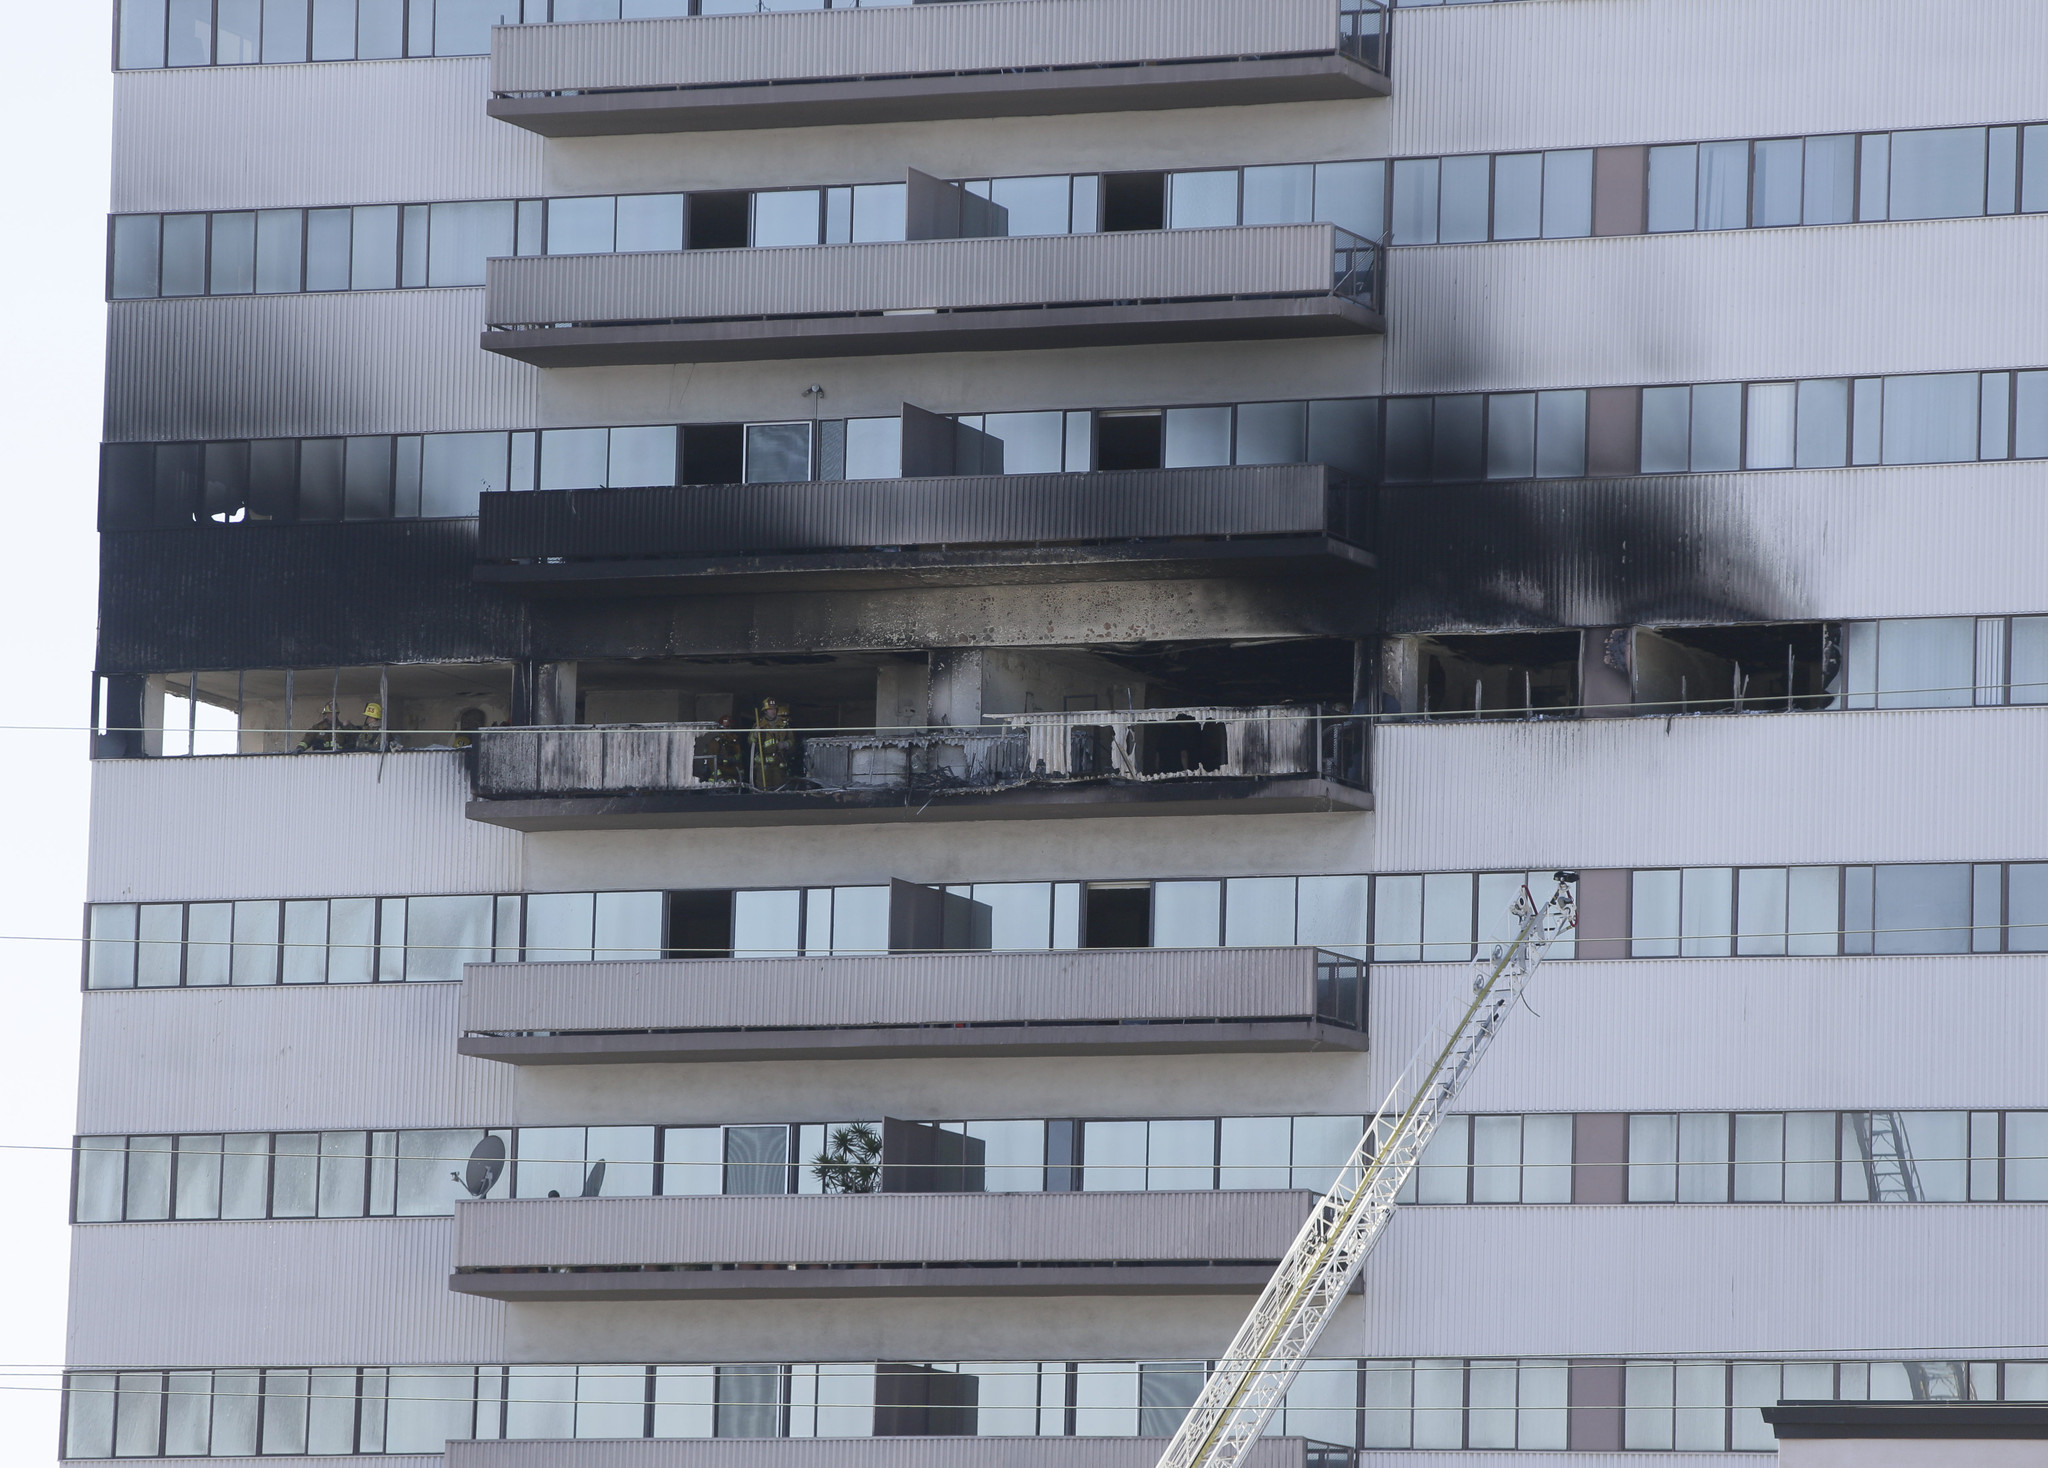 French foreign exchange student dies after Los Angeles apartment fire